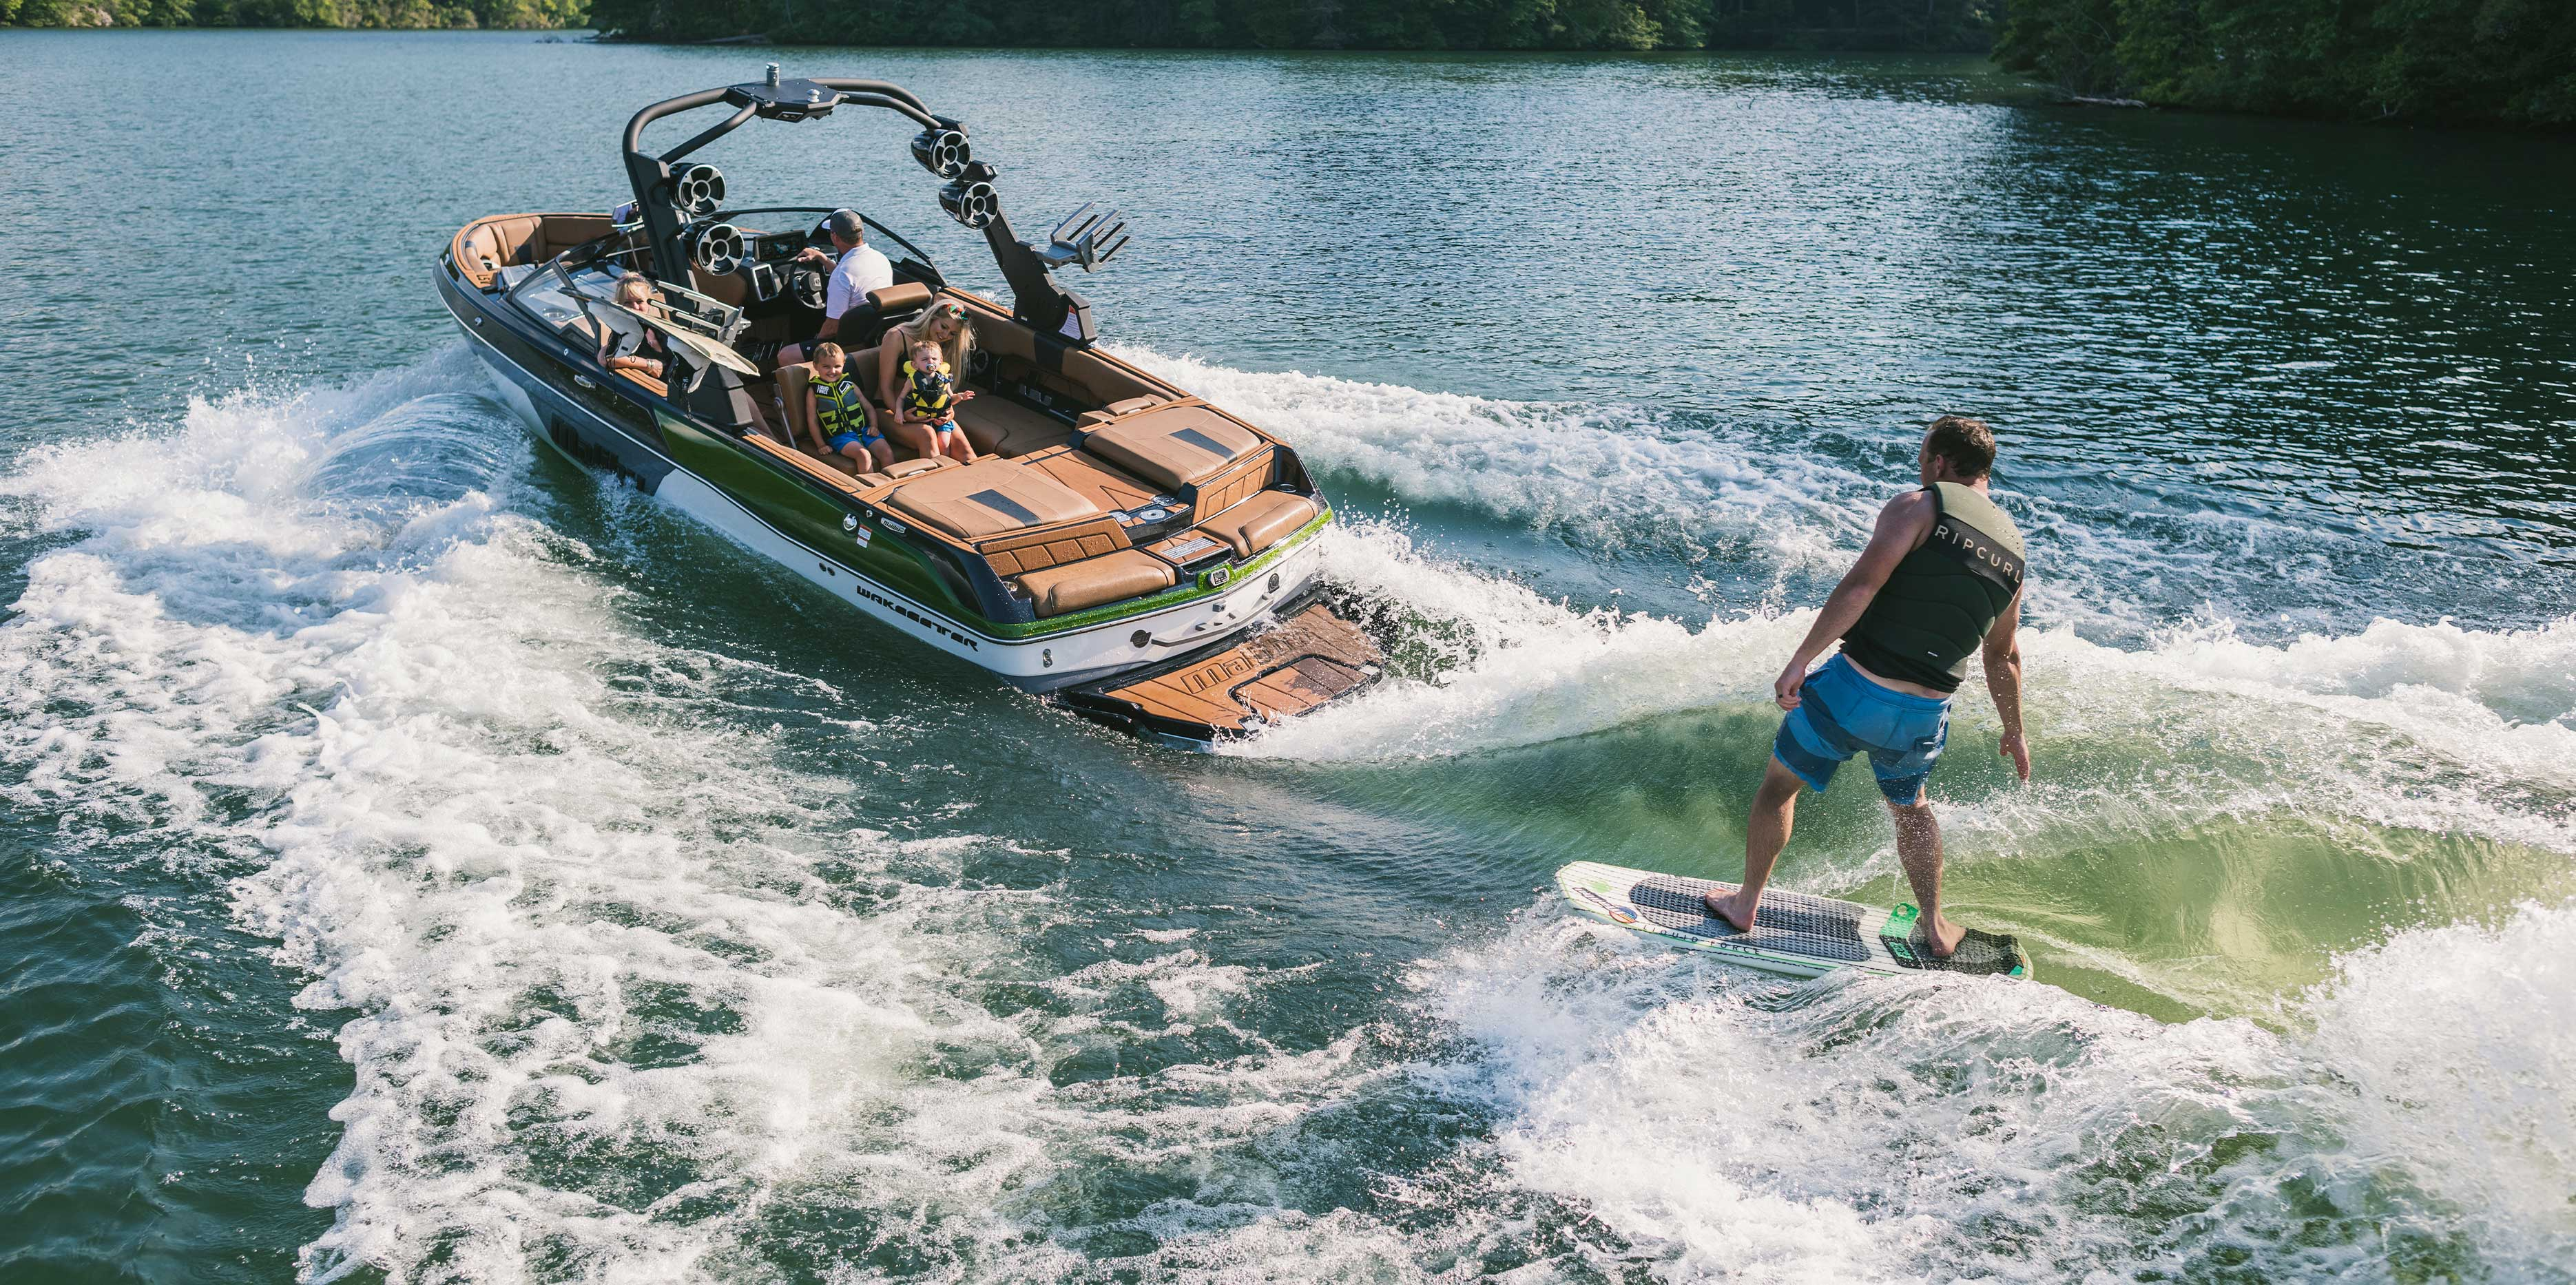 Wakesurfing behind the 23 LSV